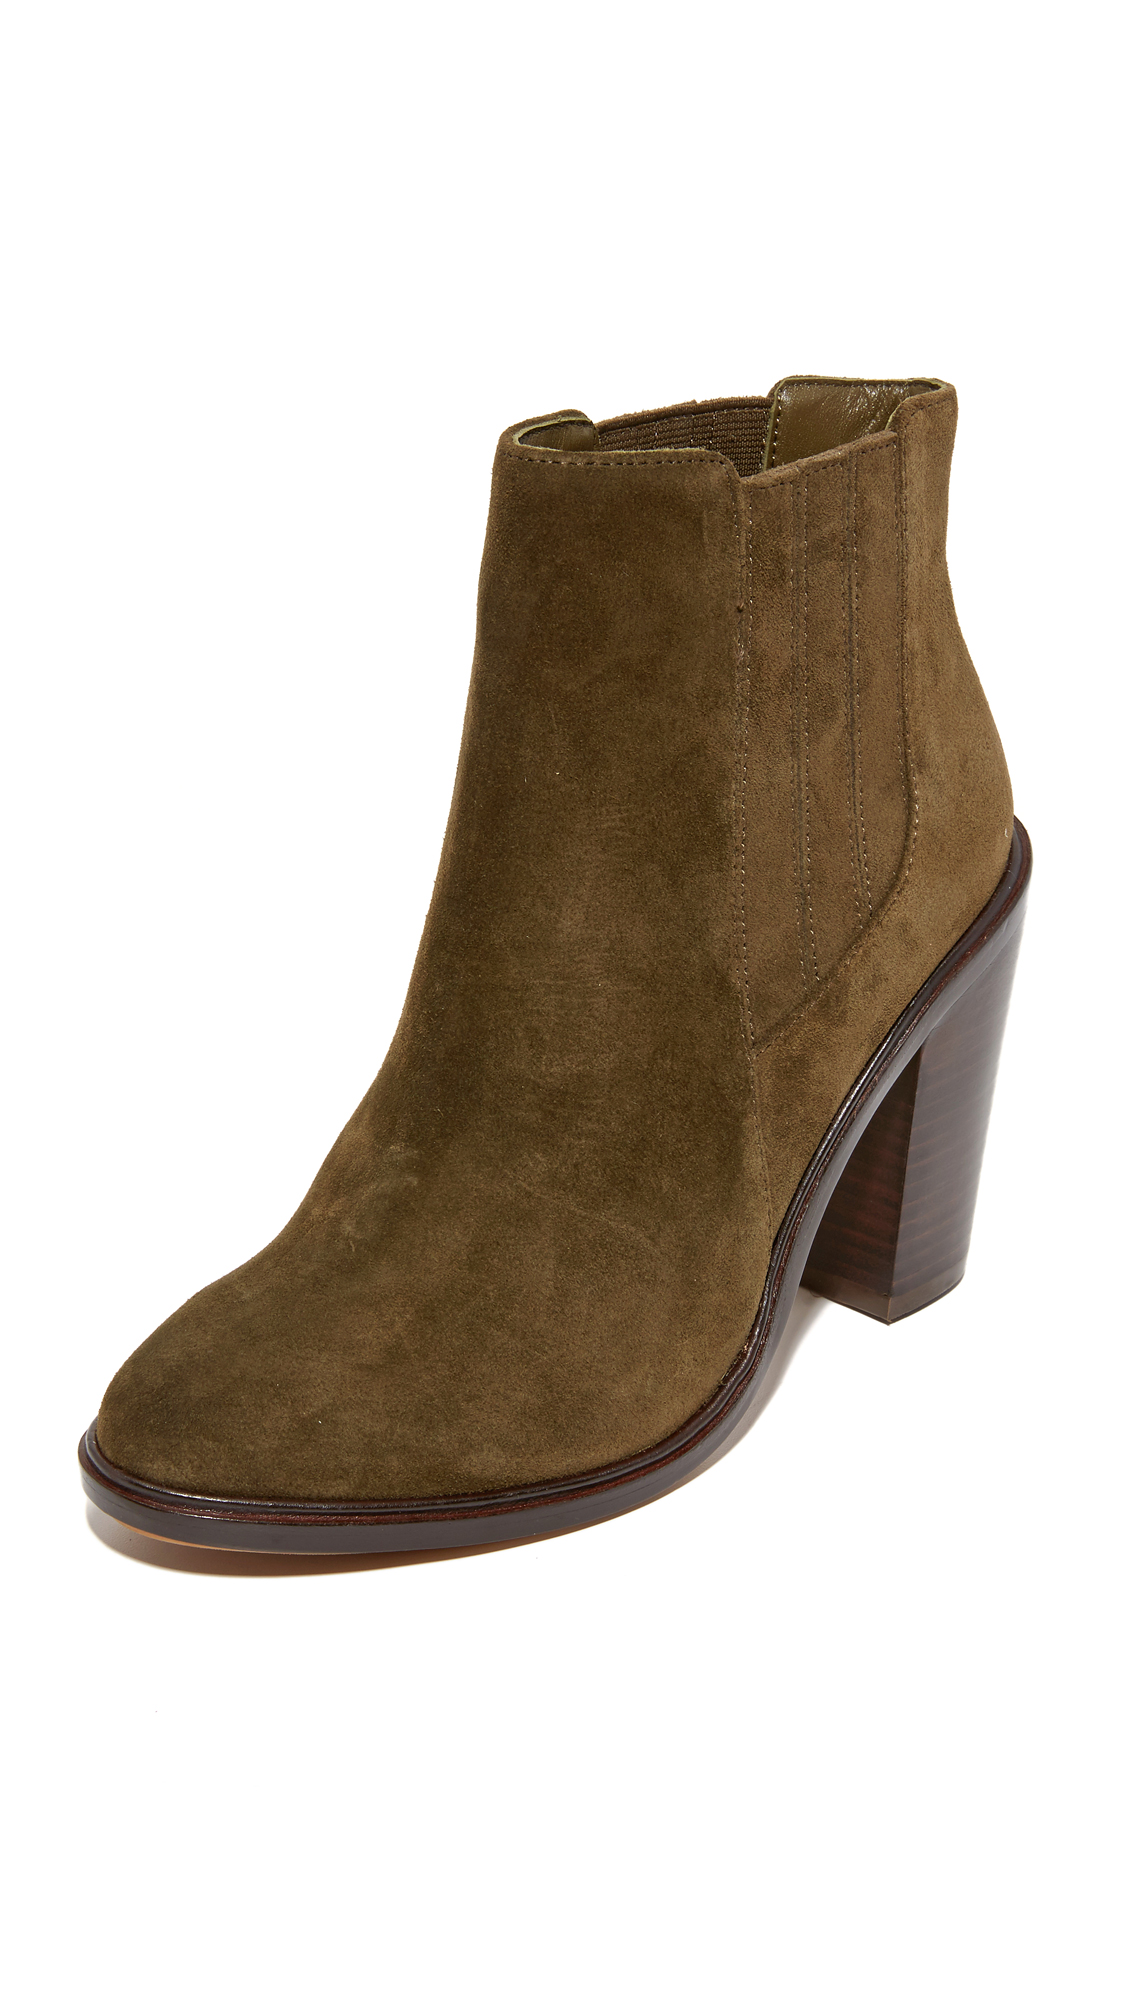 Joie Cloee Booties - Deep Olive at Shopbop